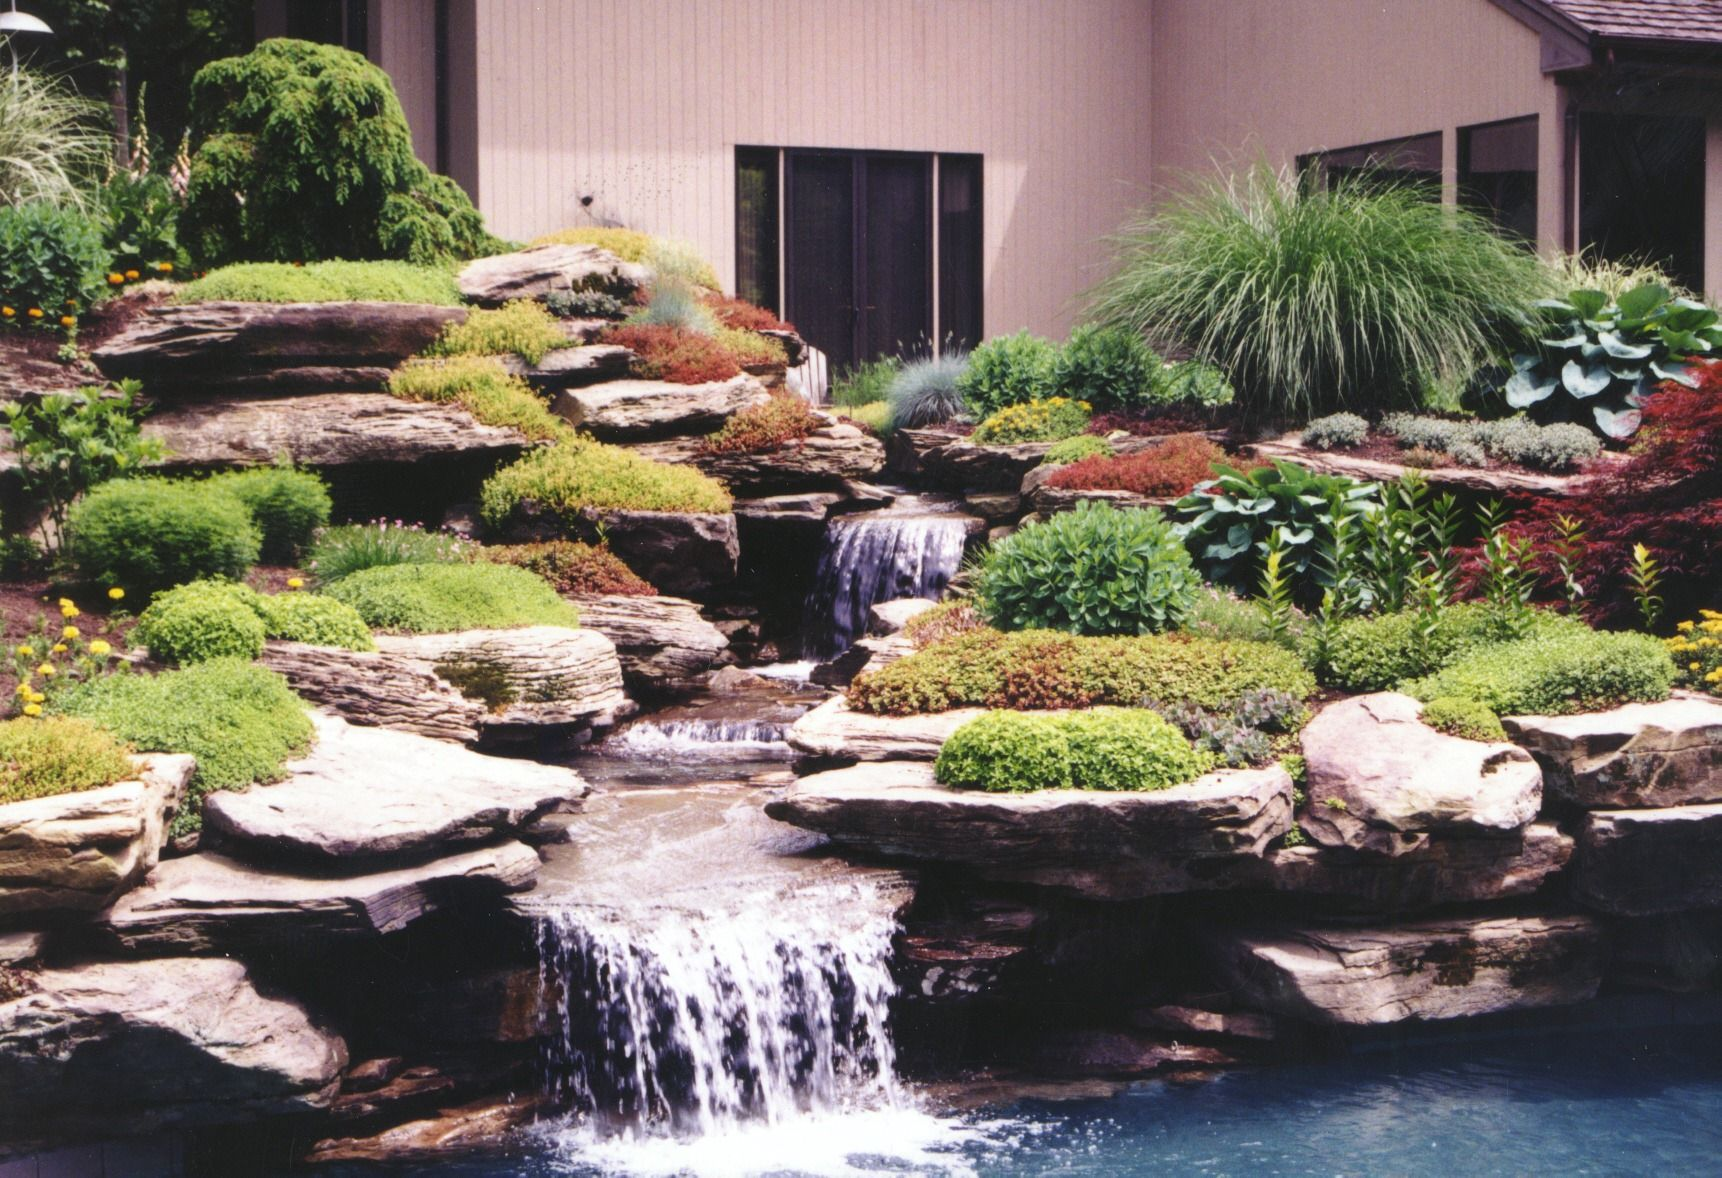 Rock Garden Designs You can combine rock gardens designs with